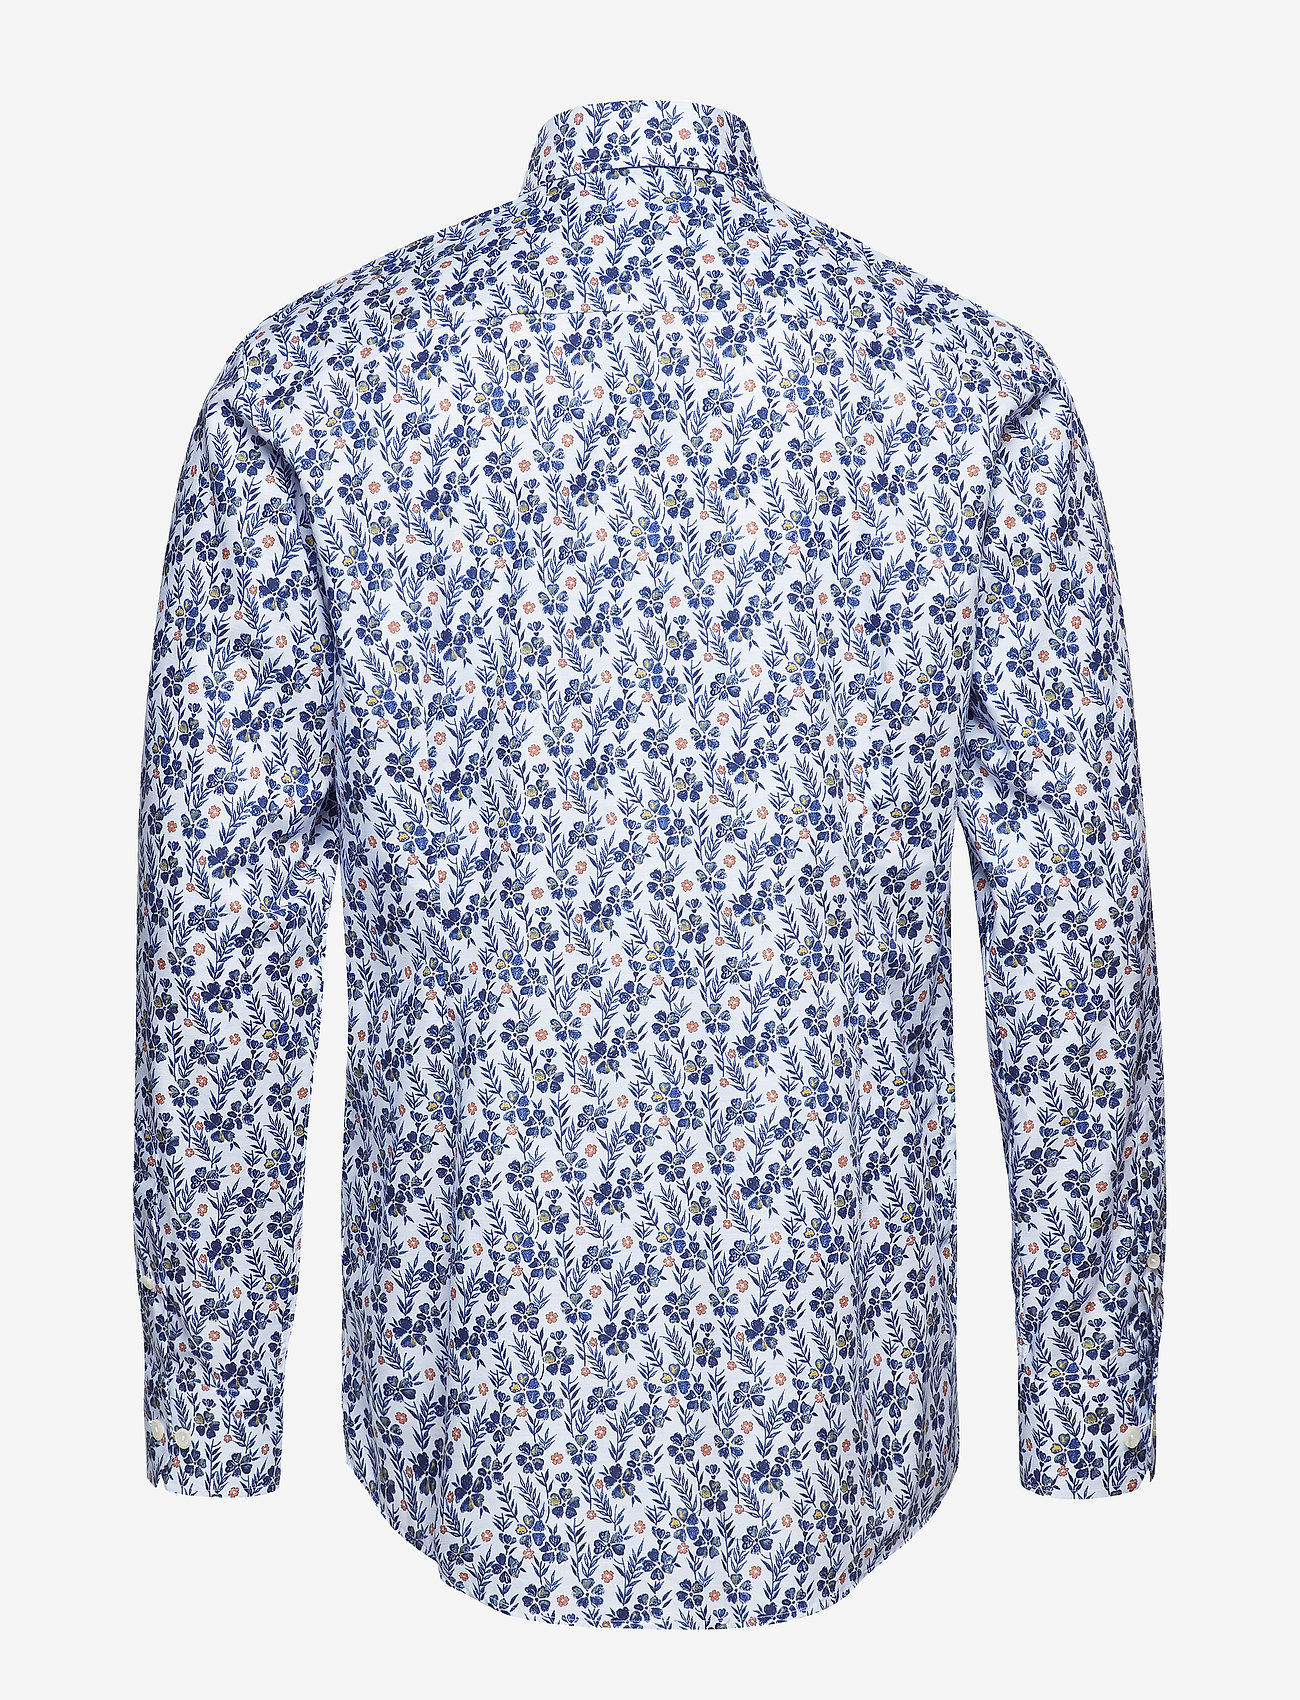 Eton Floral Print Twill Shirt - Contemporary Fit Shirts